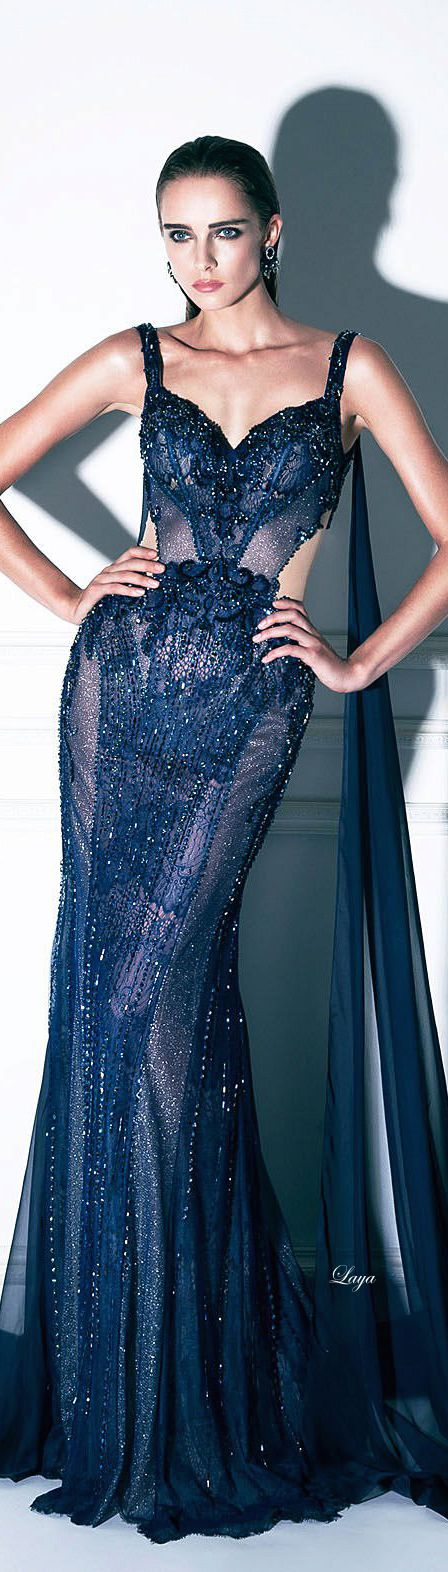 "Dany Tabet Couture ""Night in Moscow"" - F/W 2014-15     jaglady"